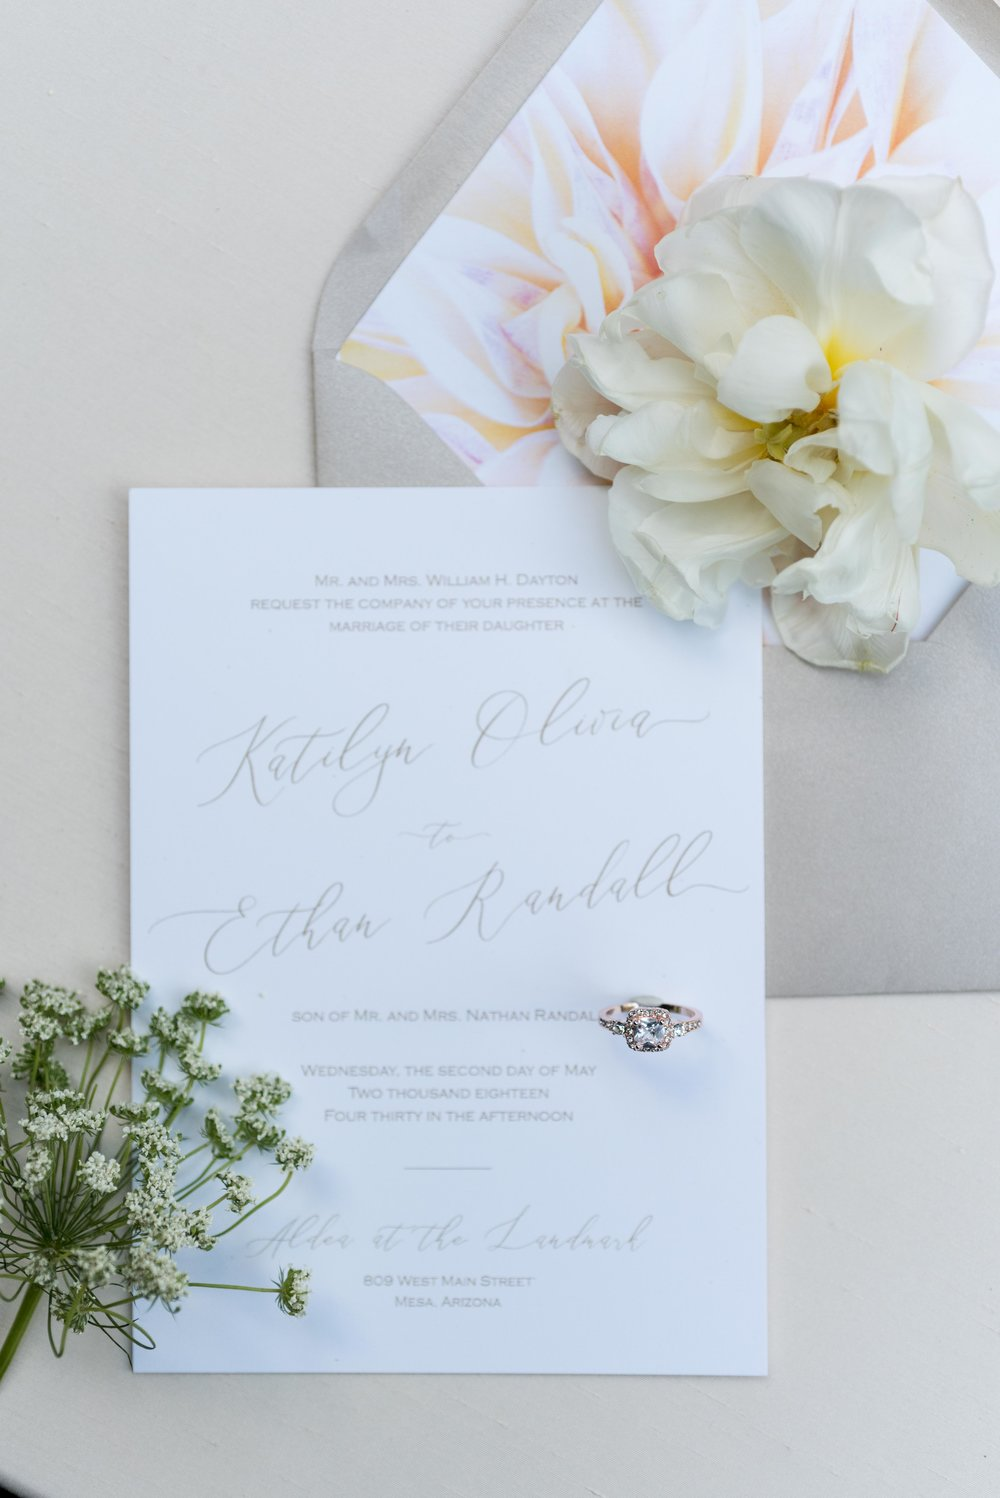 The writing. - Nora Belle Designs provided lovely invites and menus.